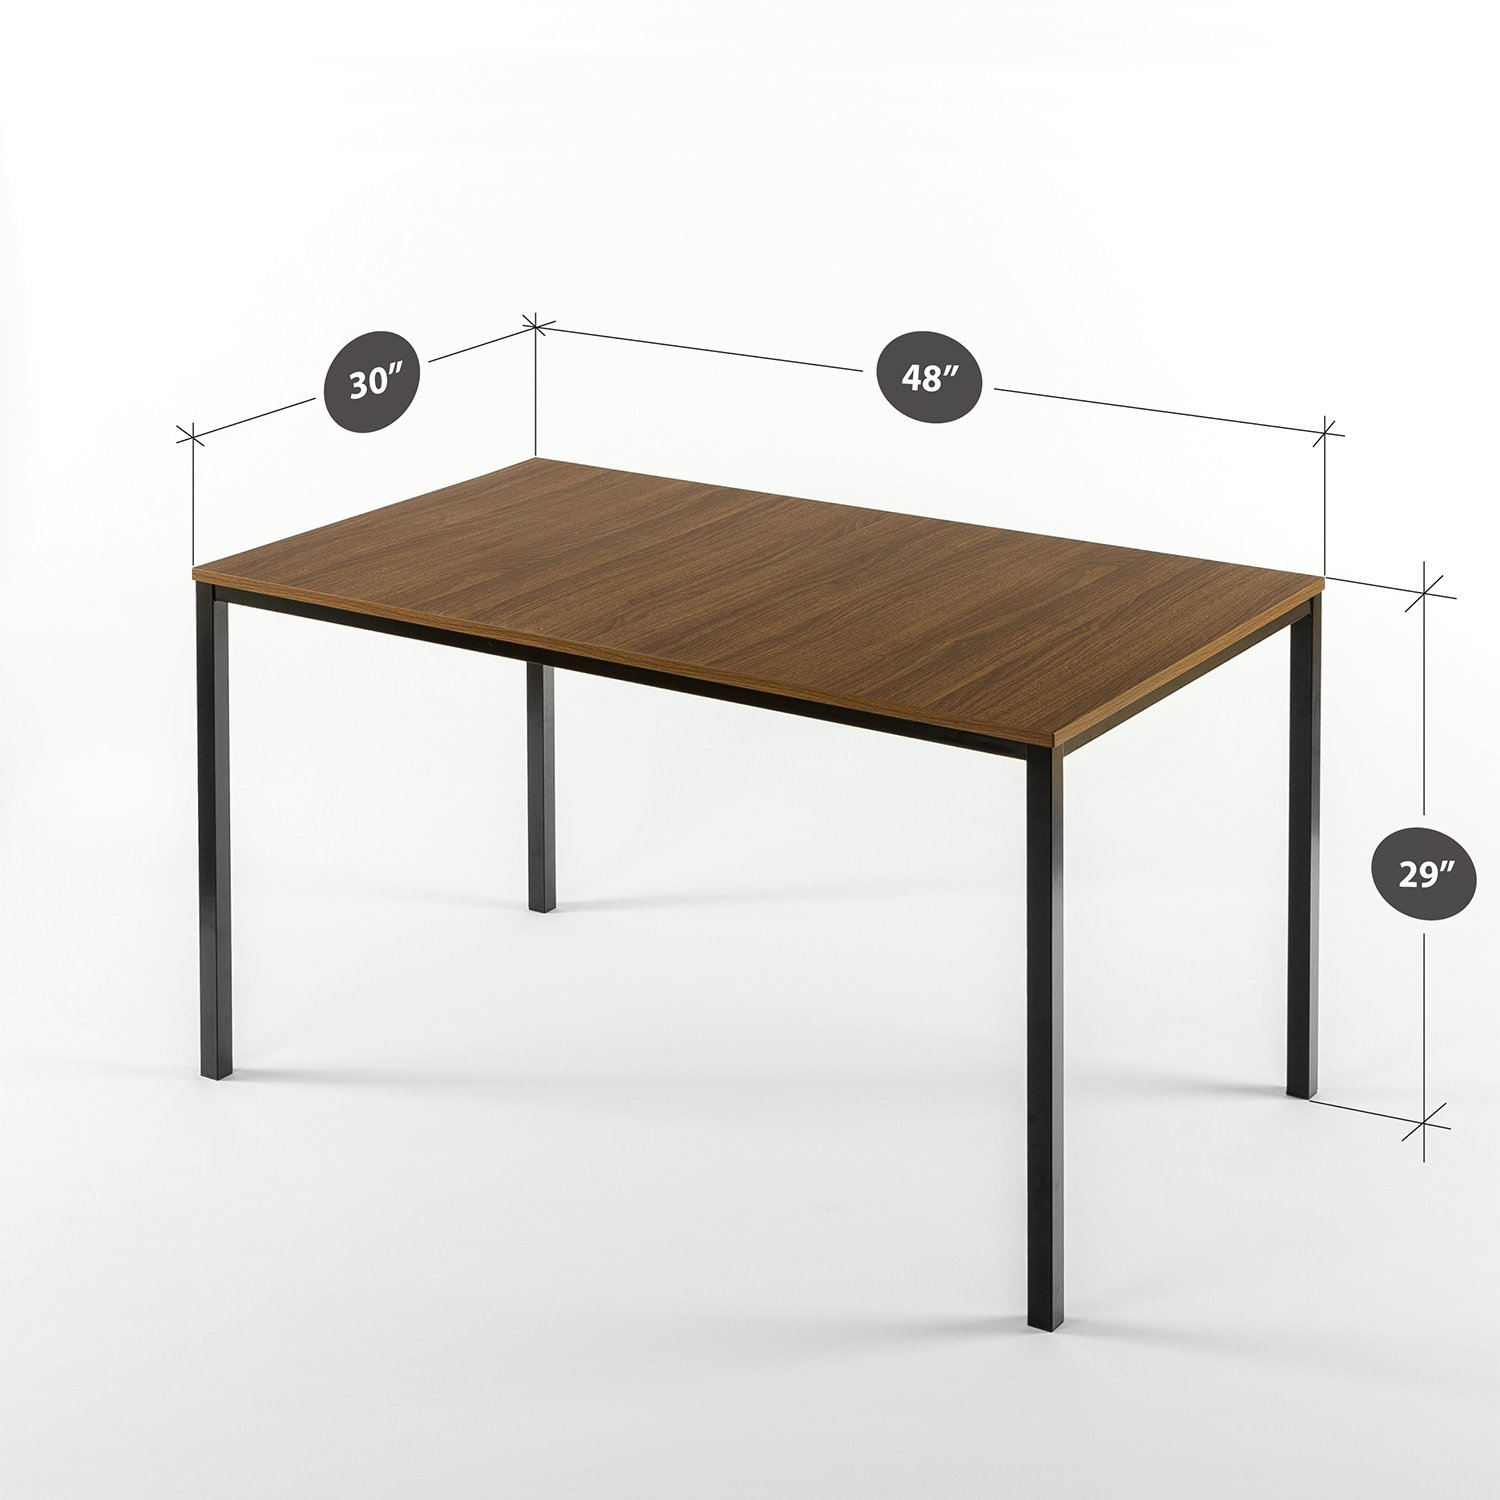 Zinus Modern Studio Collection Soho Dining Table/Office Desk/Computer Desk/Table Only, Brown by Zinus (Image #2)